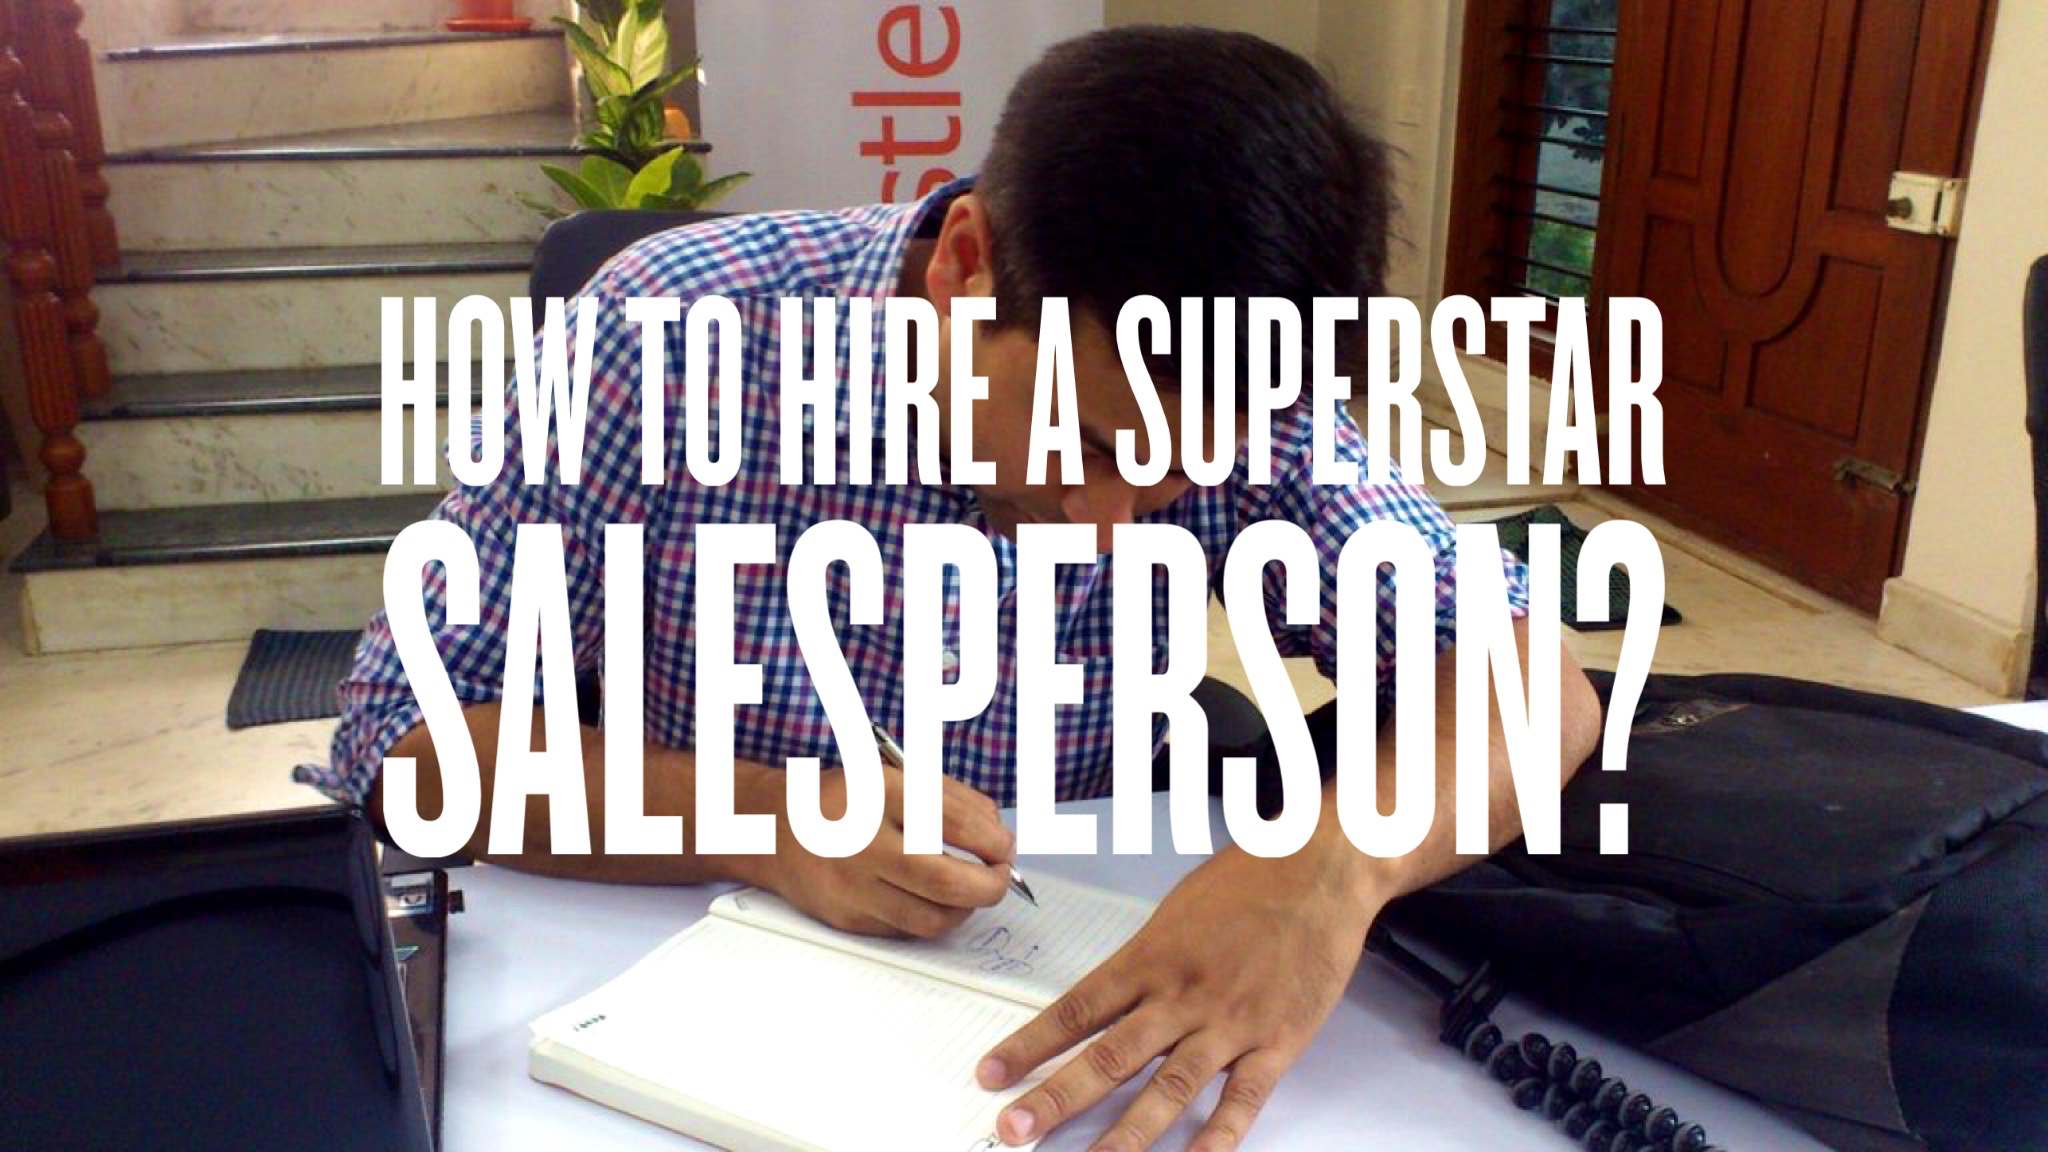 How to hire a superstar sales person?